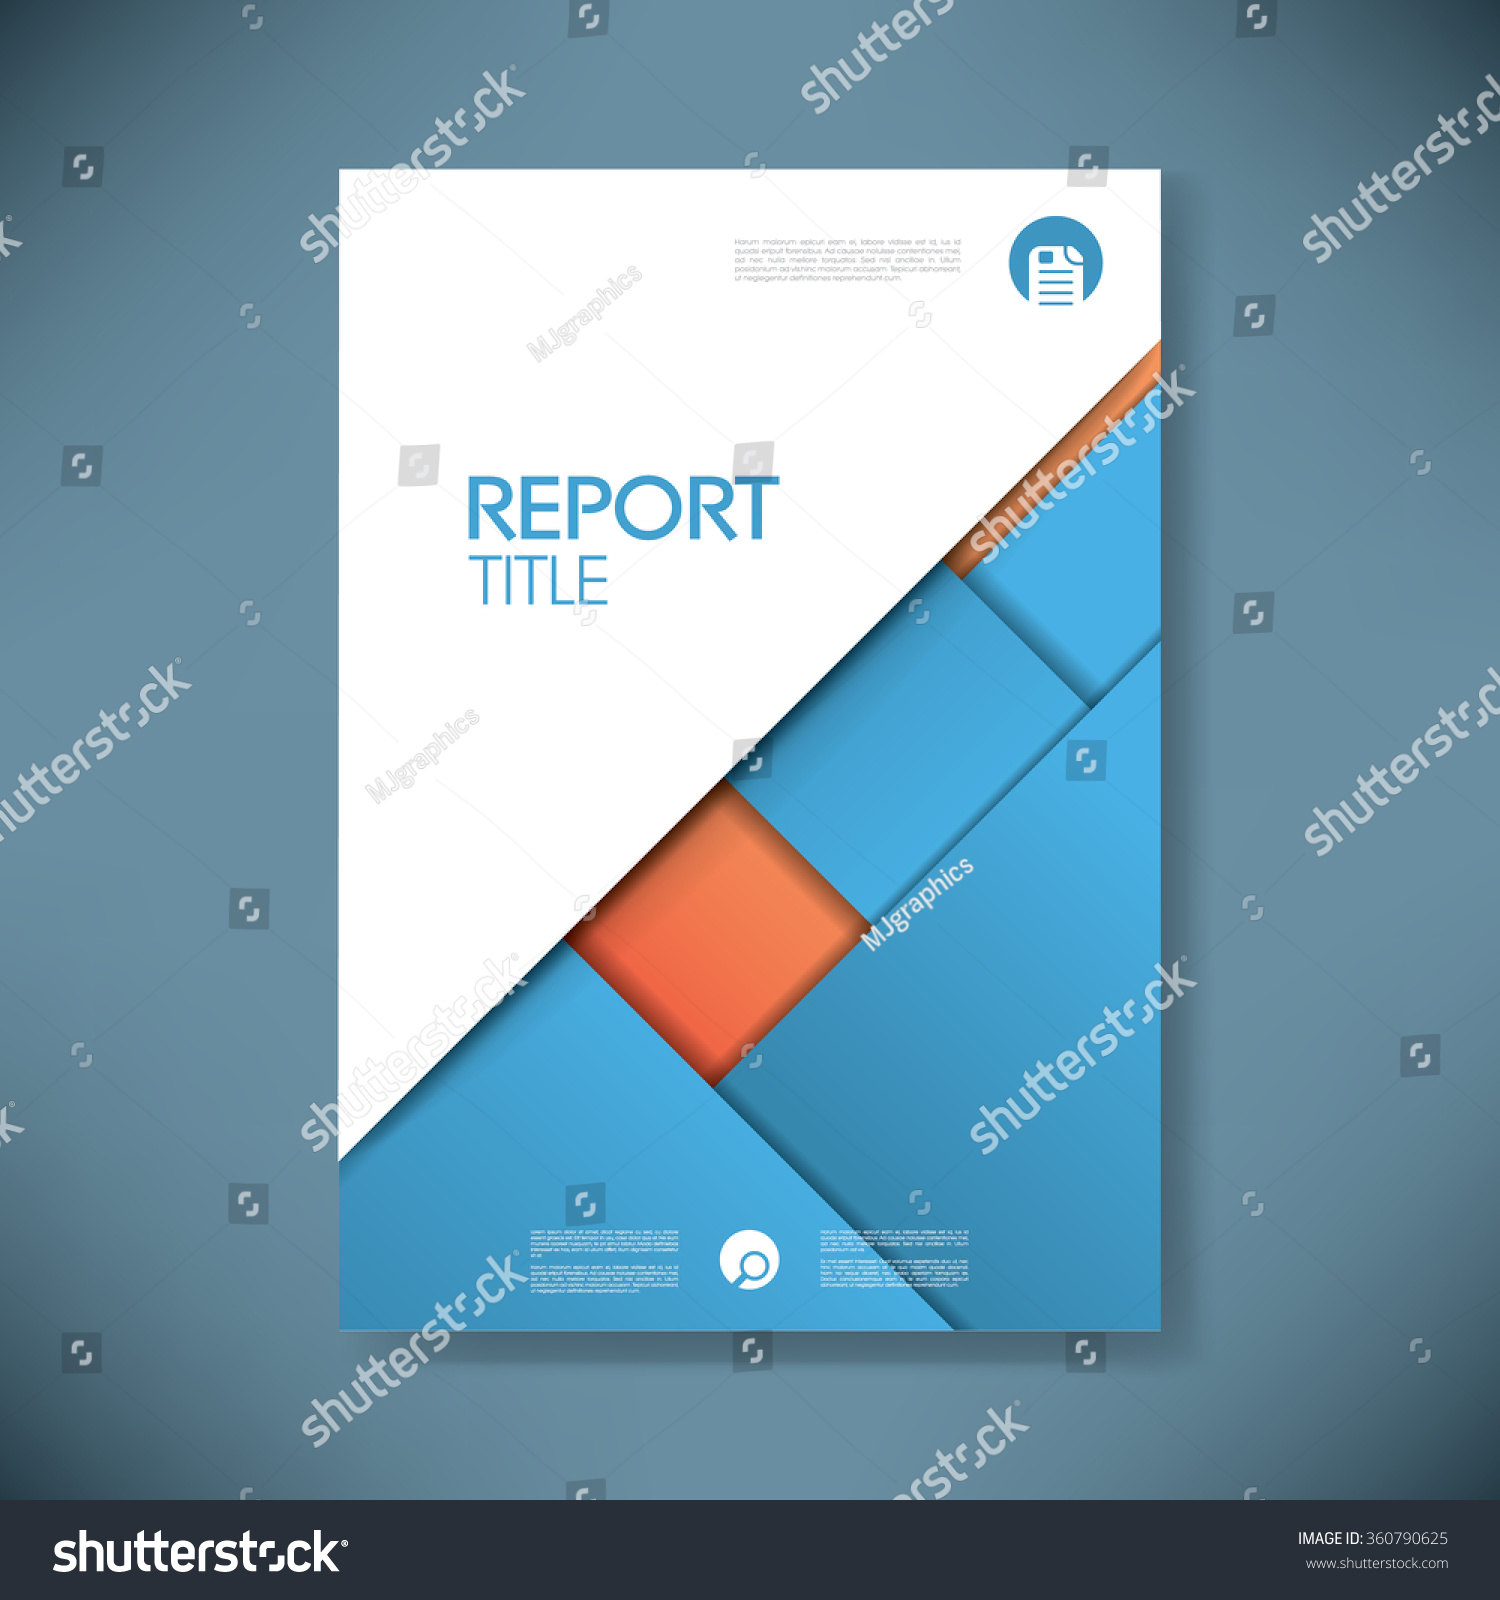 royalty business report cover template on blue  business report cover template on blue material design background brochure or presentation title page